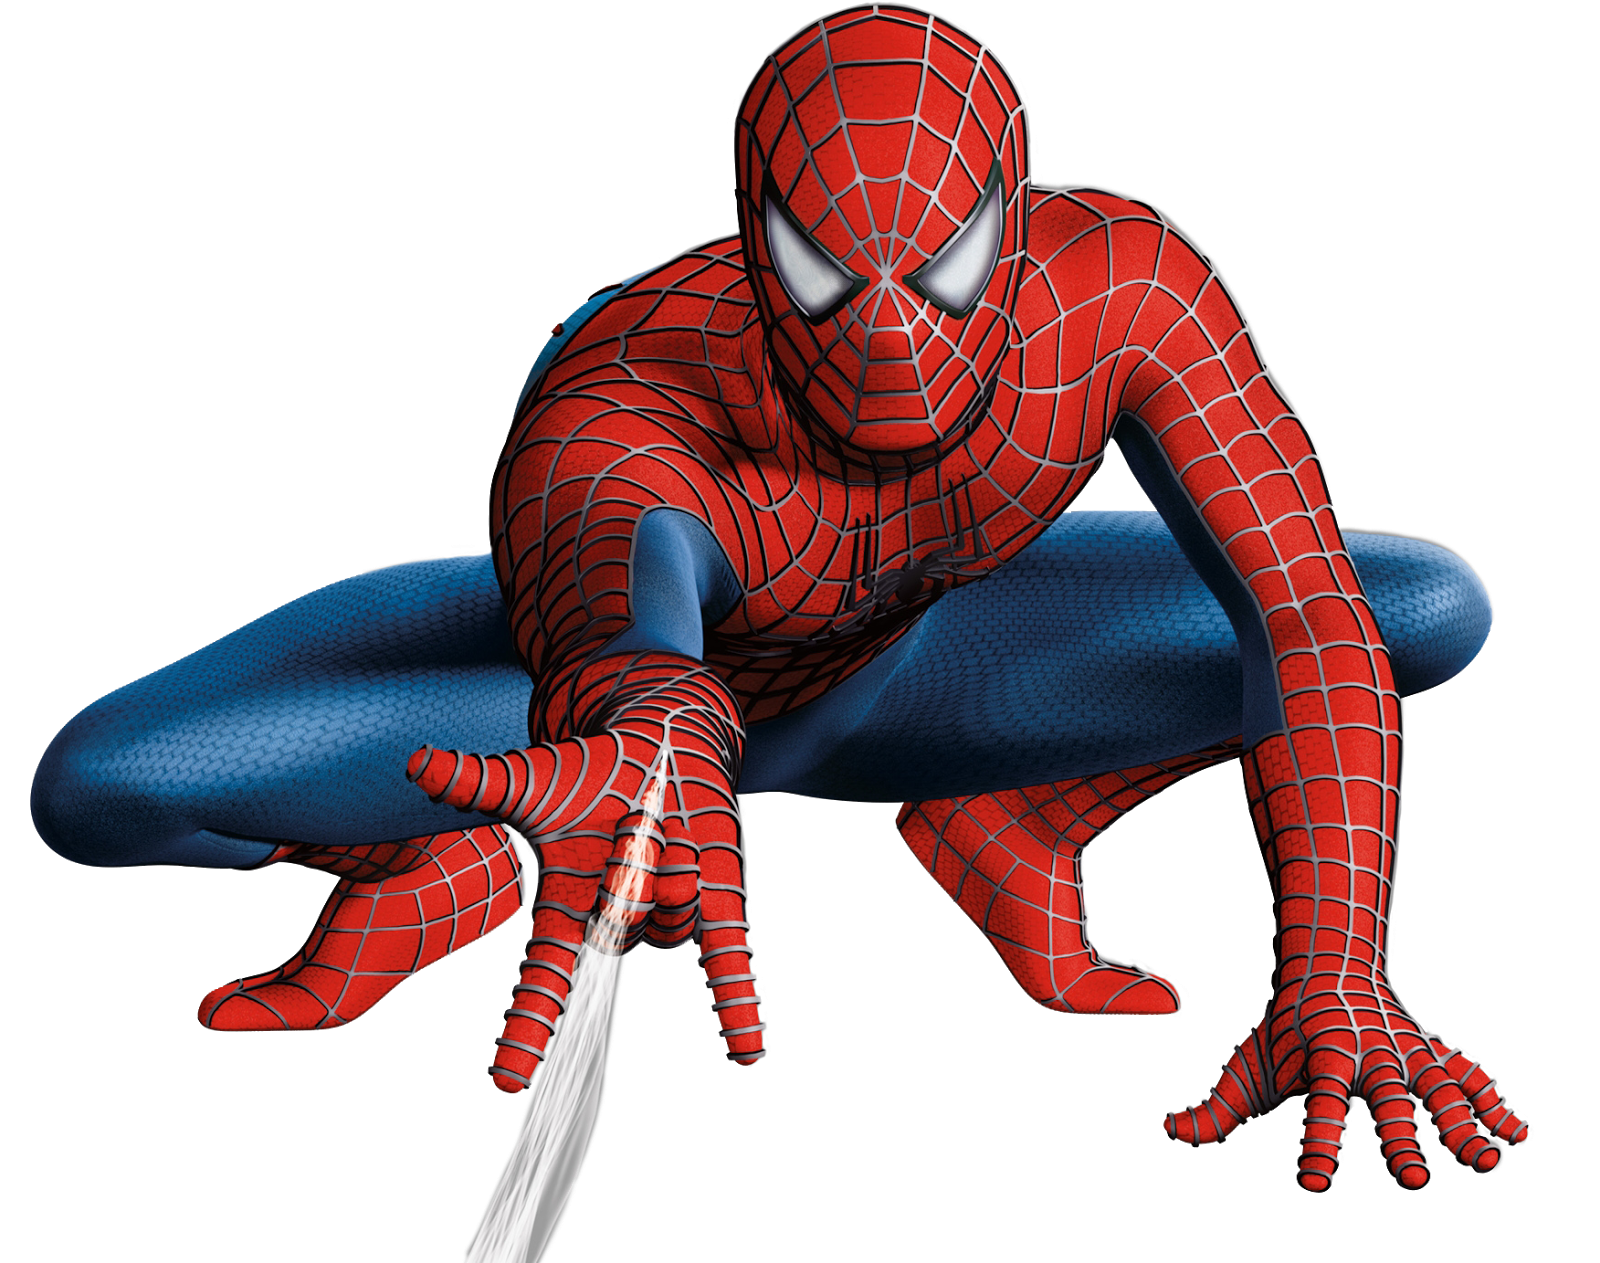 Spider-Man Spider-Man Clipart Png PNG Image